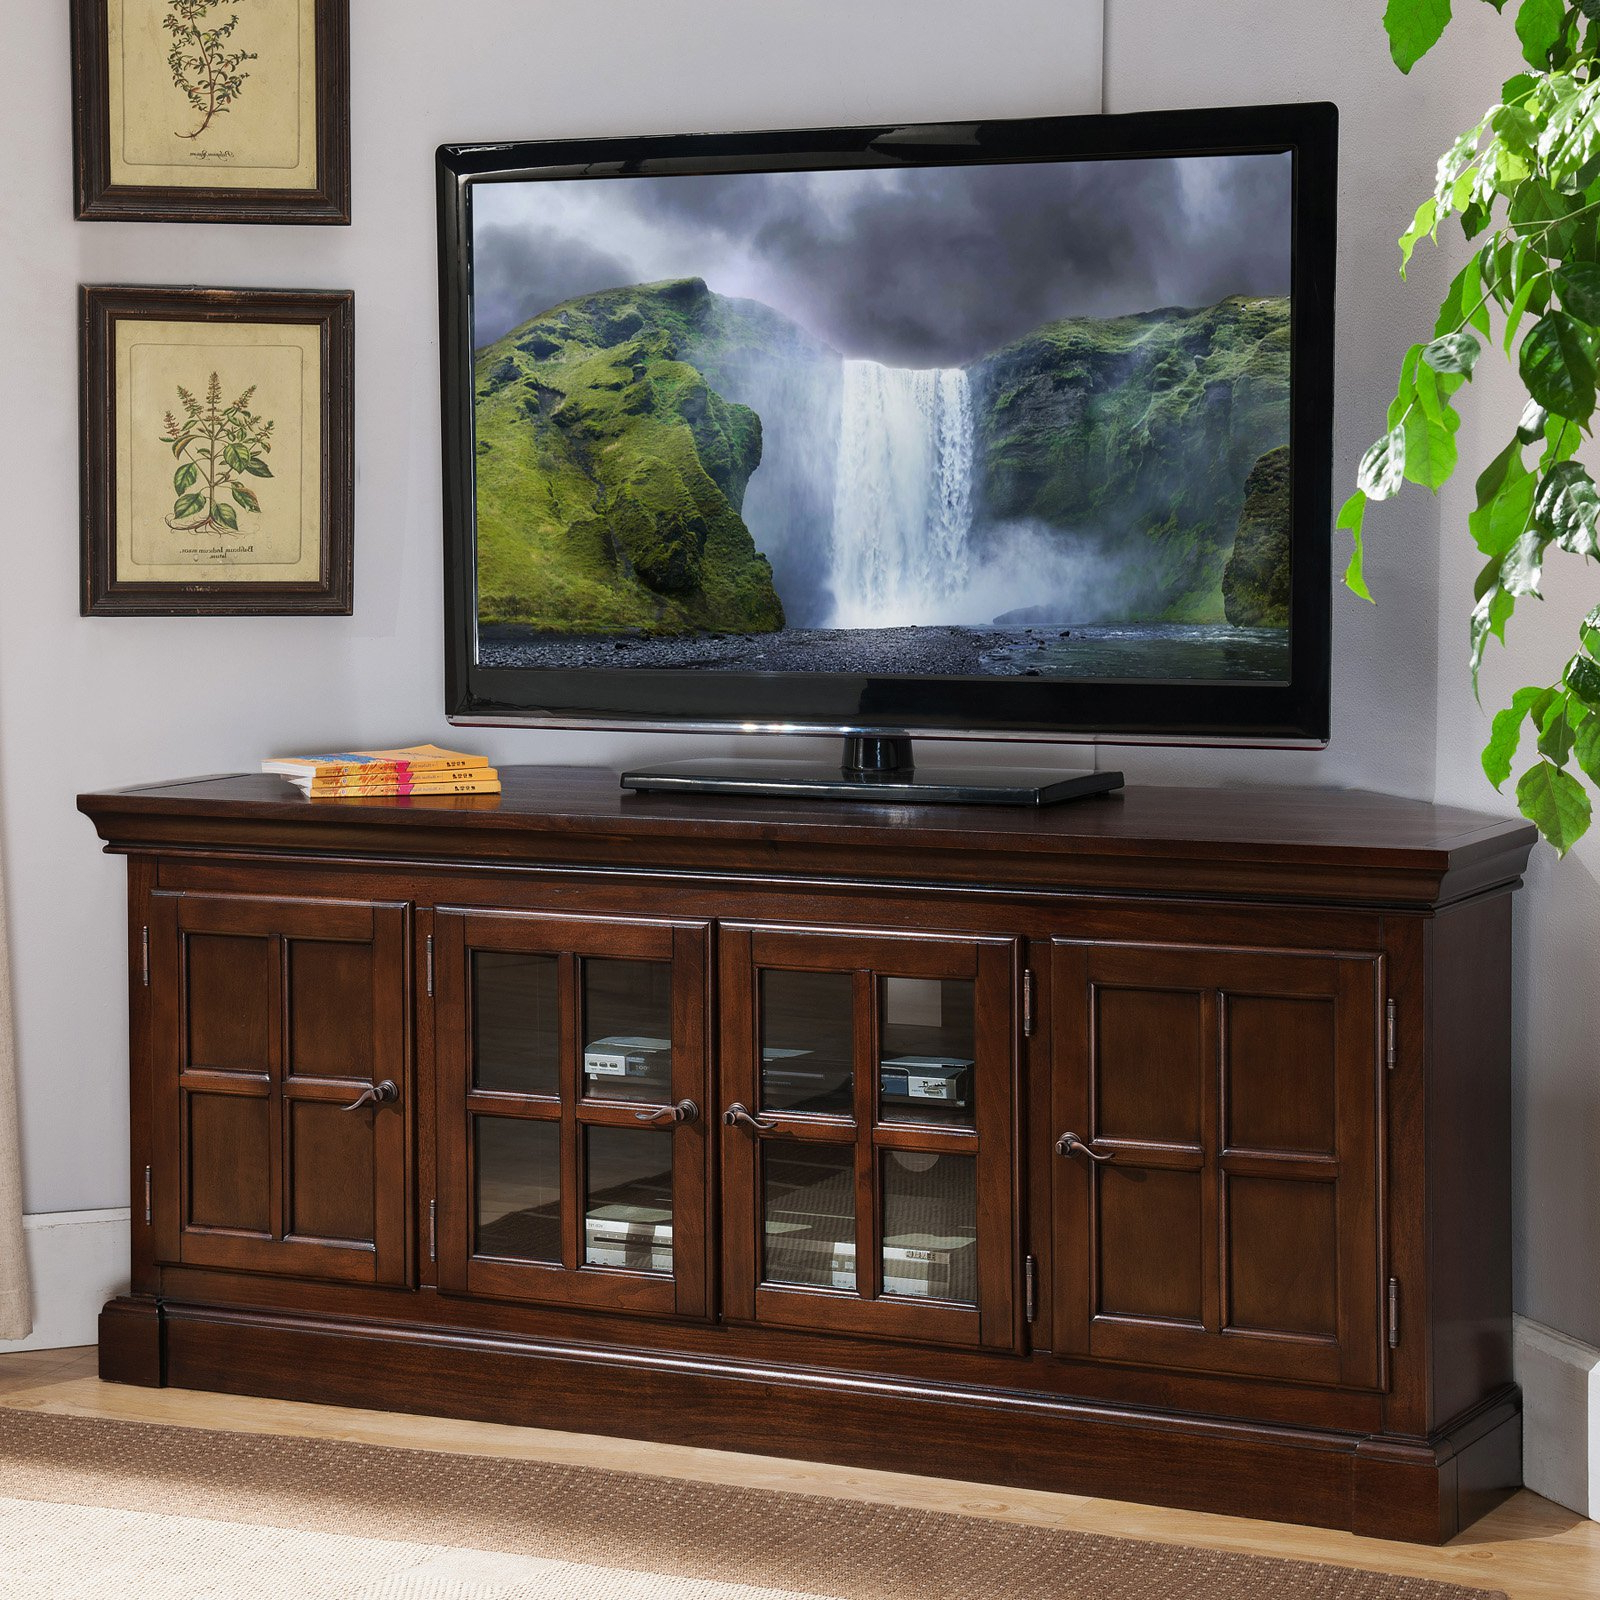 """Leick Home Bella Maison 56"""" Corner Tv Stand For Tv's Up To Inside Totally Tv Stands For Tvs Up To 65"""" (View 9 of 20)"""